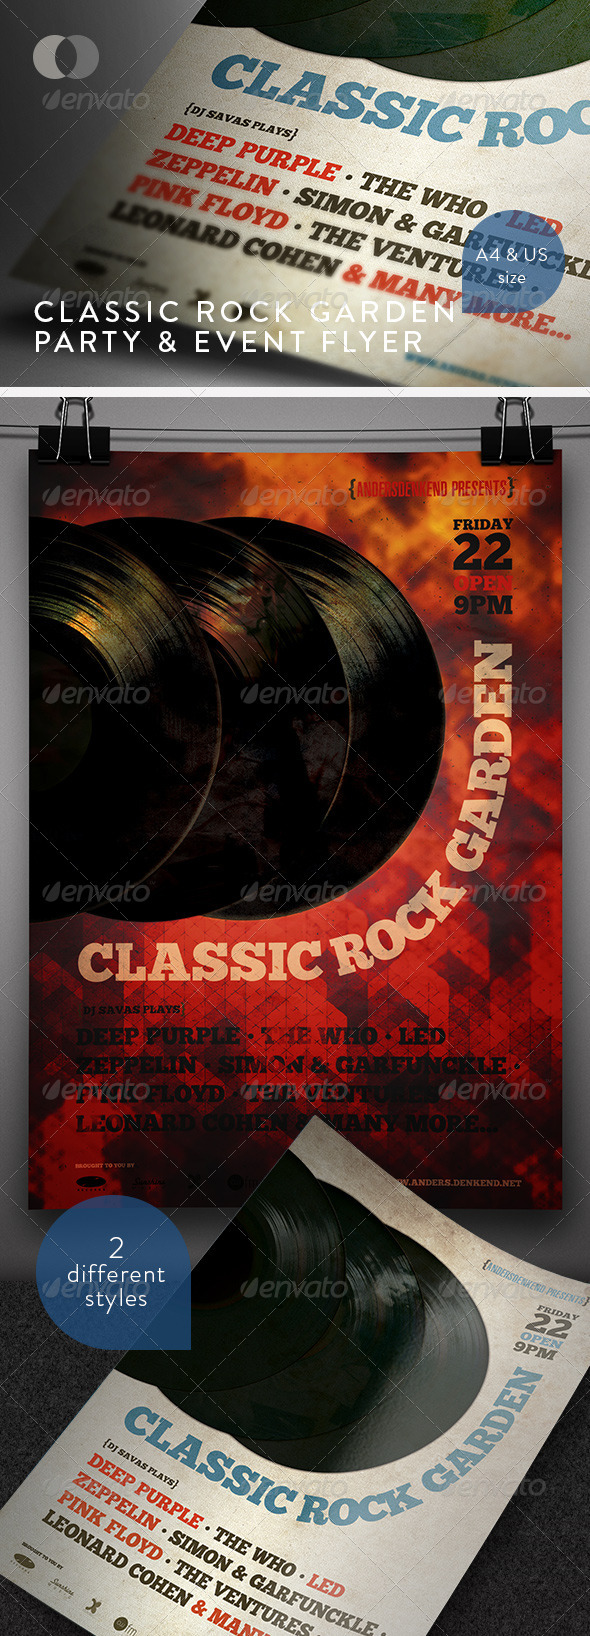 Music &amp; Event Flyer - Classic Rock Garden - Events Flyers